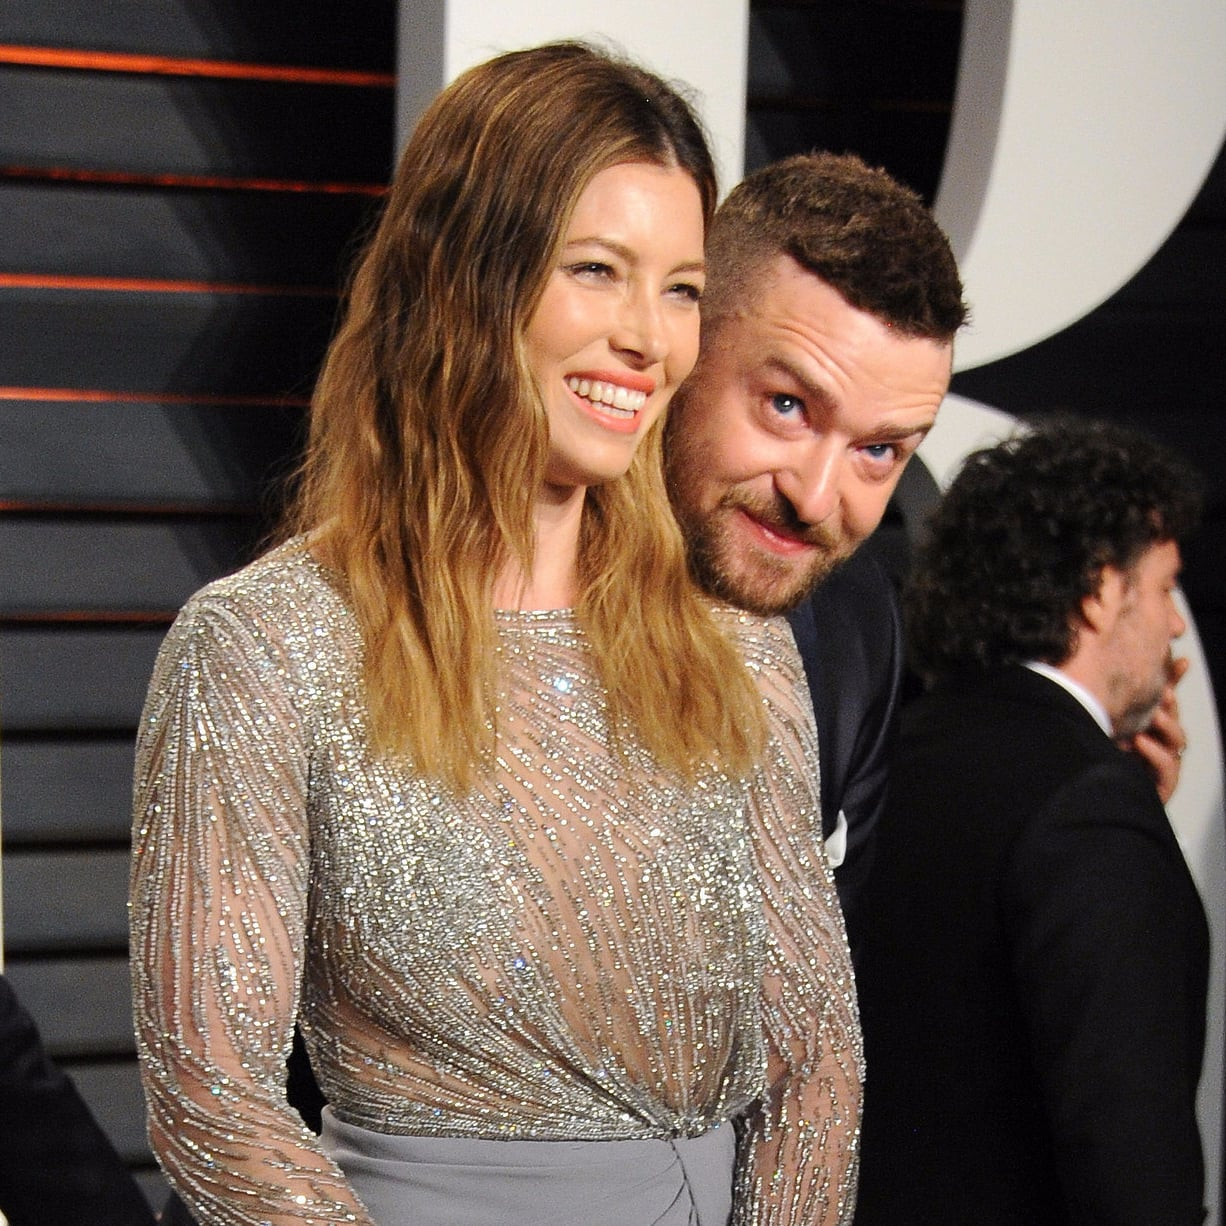 Who is justin timberlake dating 2016